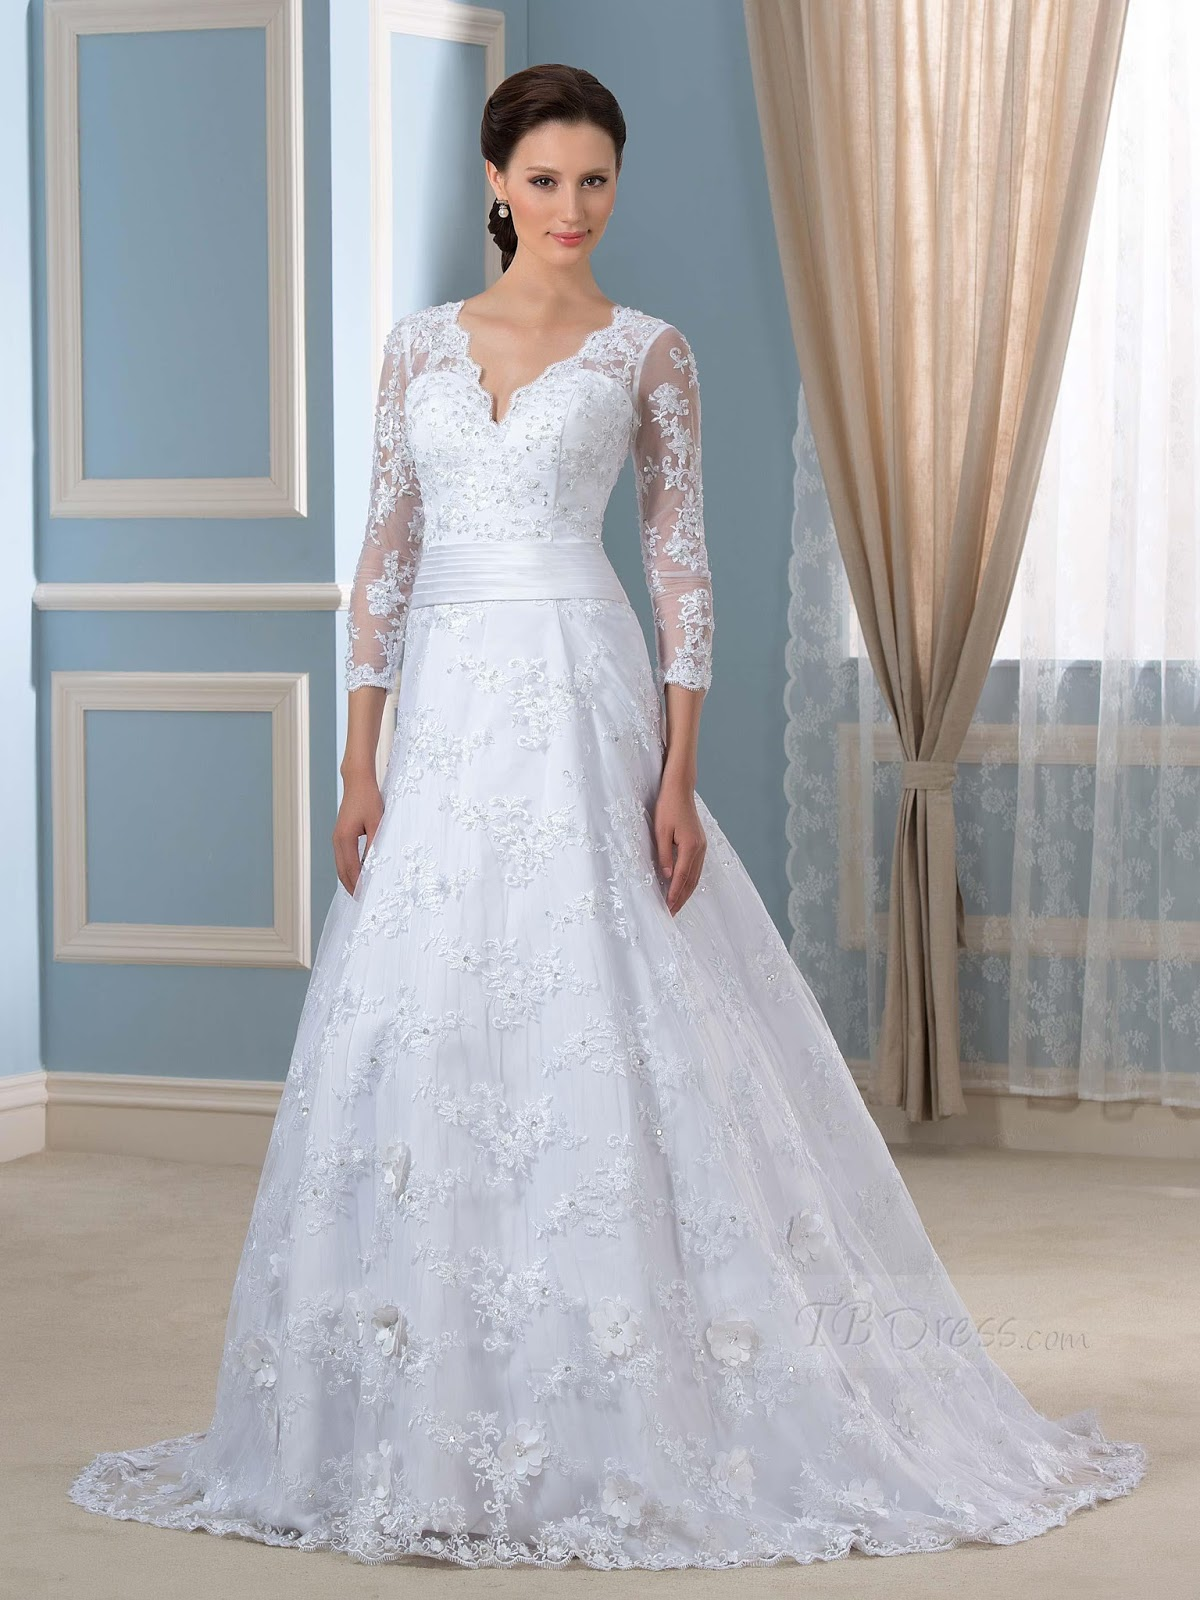 Crochet wedding dress patterns free for Wedding dress patterns free download